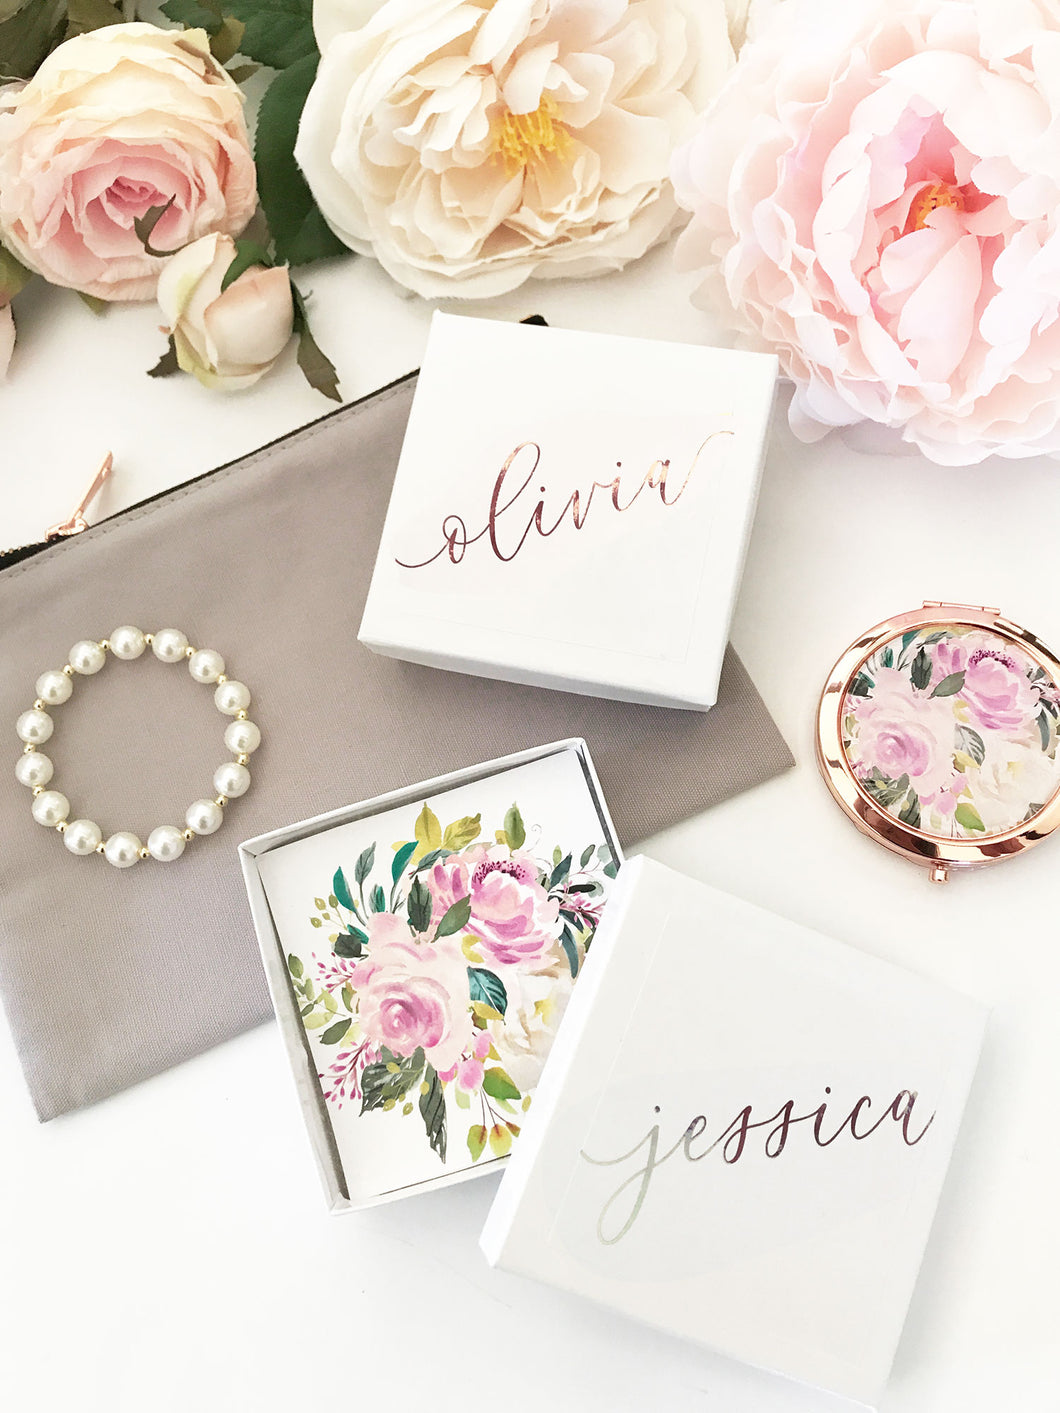 6 Personalized Jewelry Gift Boxes